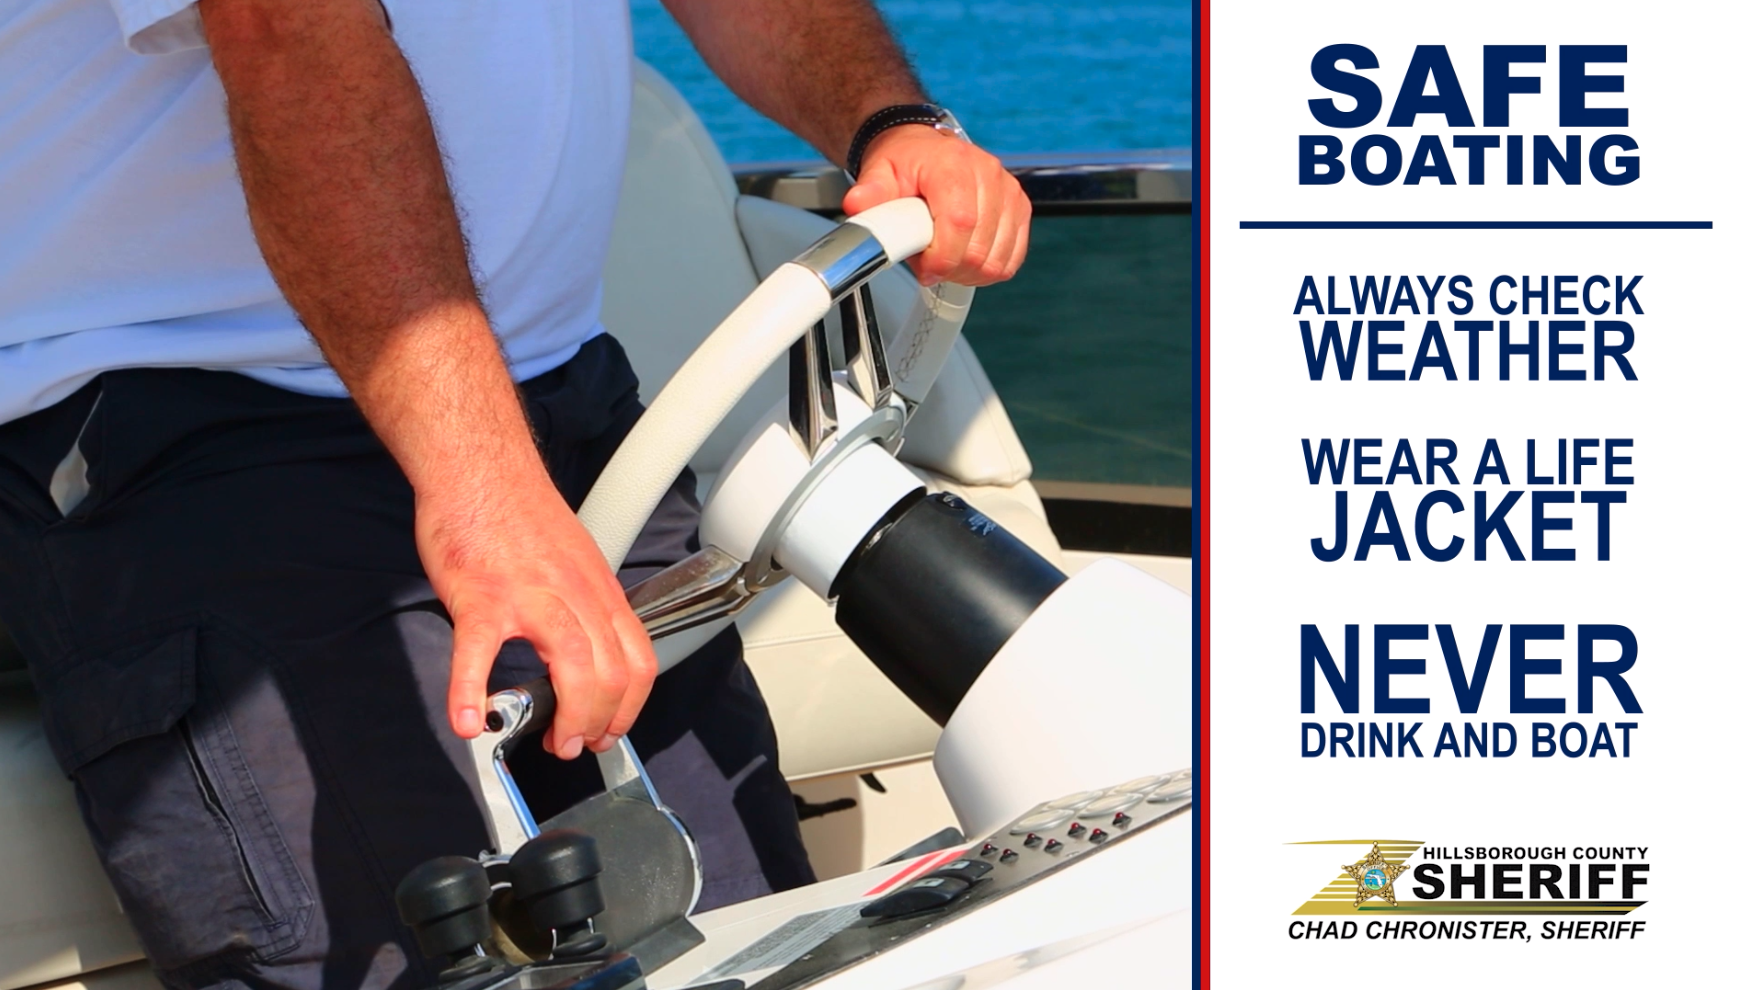 """Operation Dry Water"" to raise awareness of the dangers of boating under the influence this Fourth of July weekend"